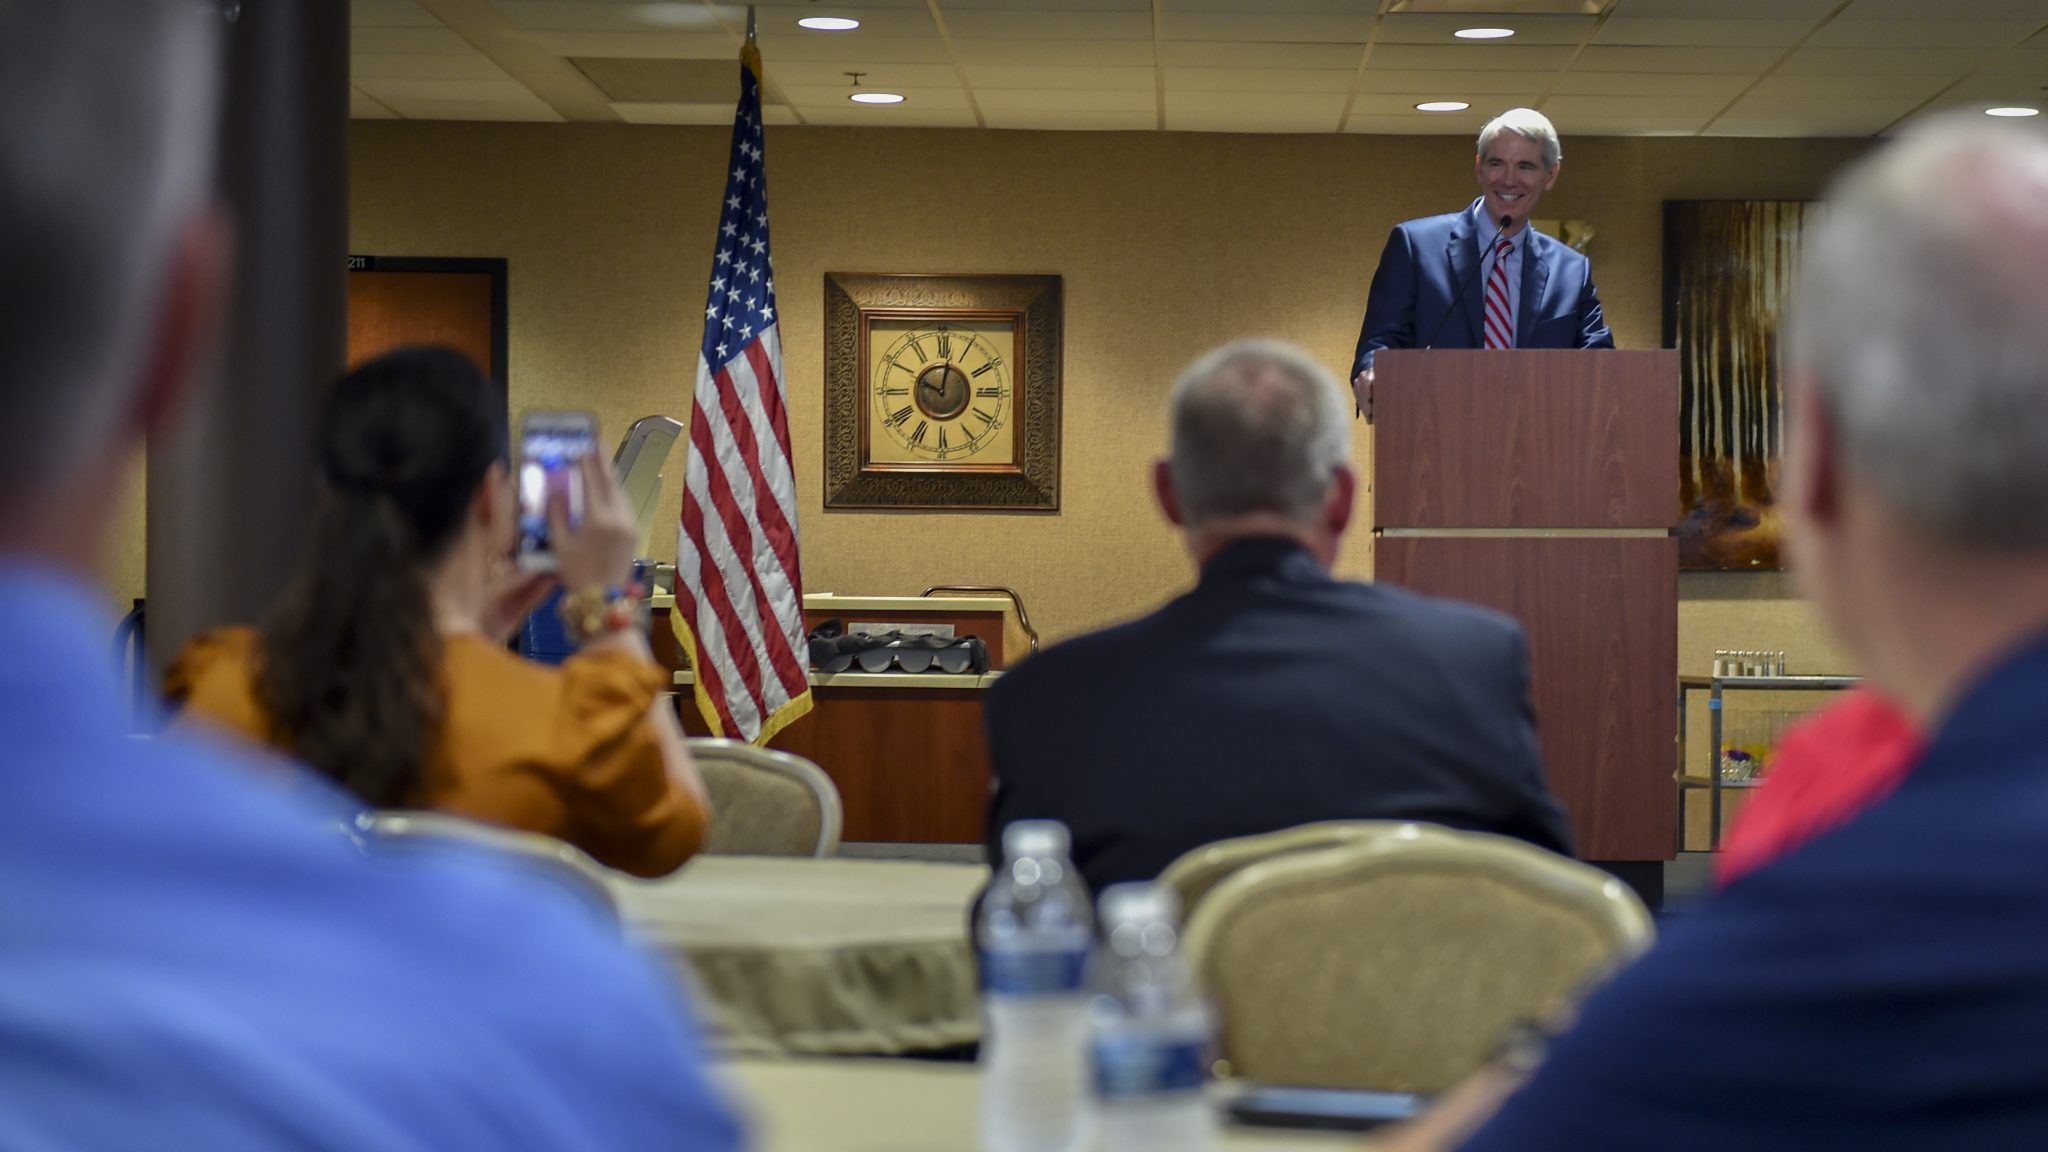 Sen. Rob Portman speaking at the EOMAC meeting at the Community Activity Center on Youngstown Air Reserve Station. Photo via U.S. Air Force /Senior Airman Noah J. Tancer.